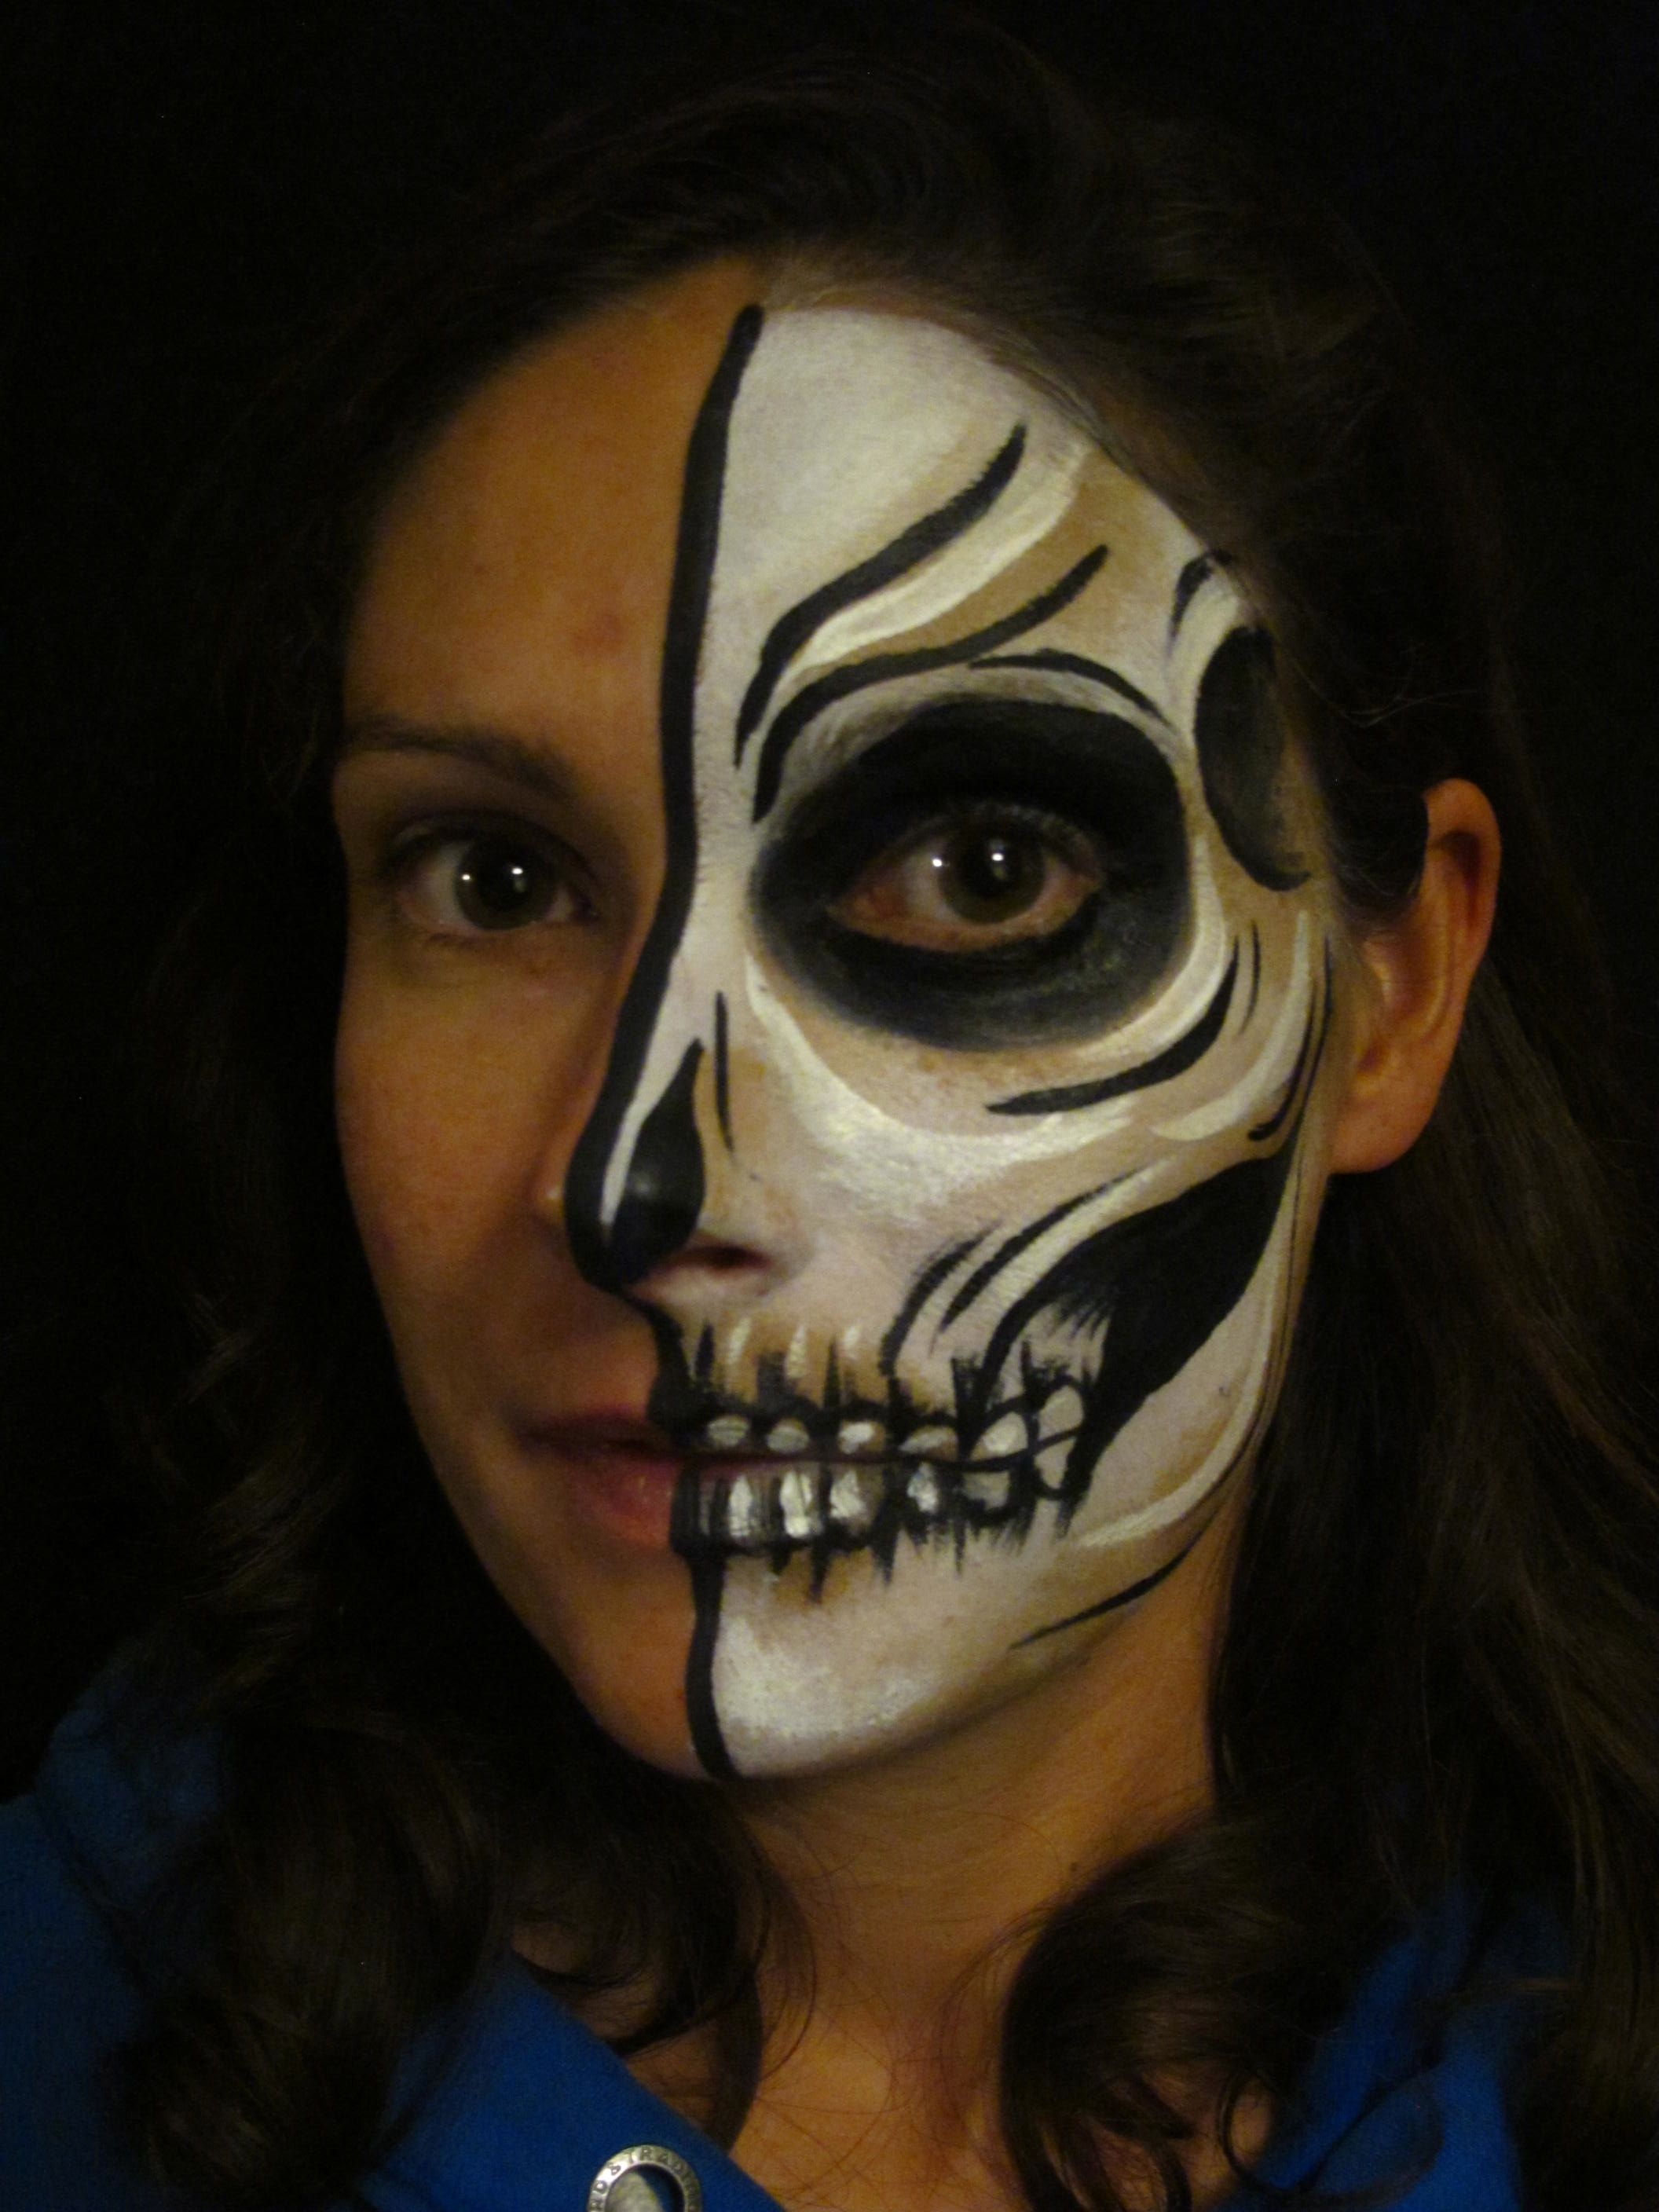 half skull face paint tutorial alana dunlevy is a bristol based face and body painter here she guides you through creepy halloween skull face painting - Halloween Skull Face Paint Ideas